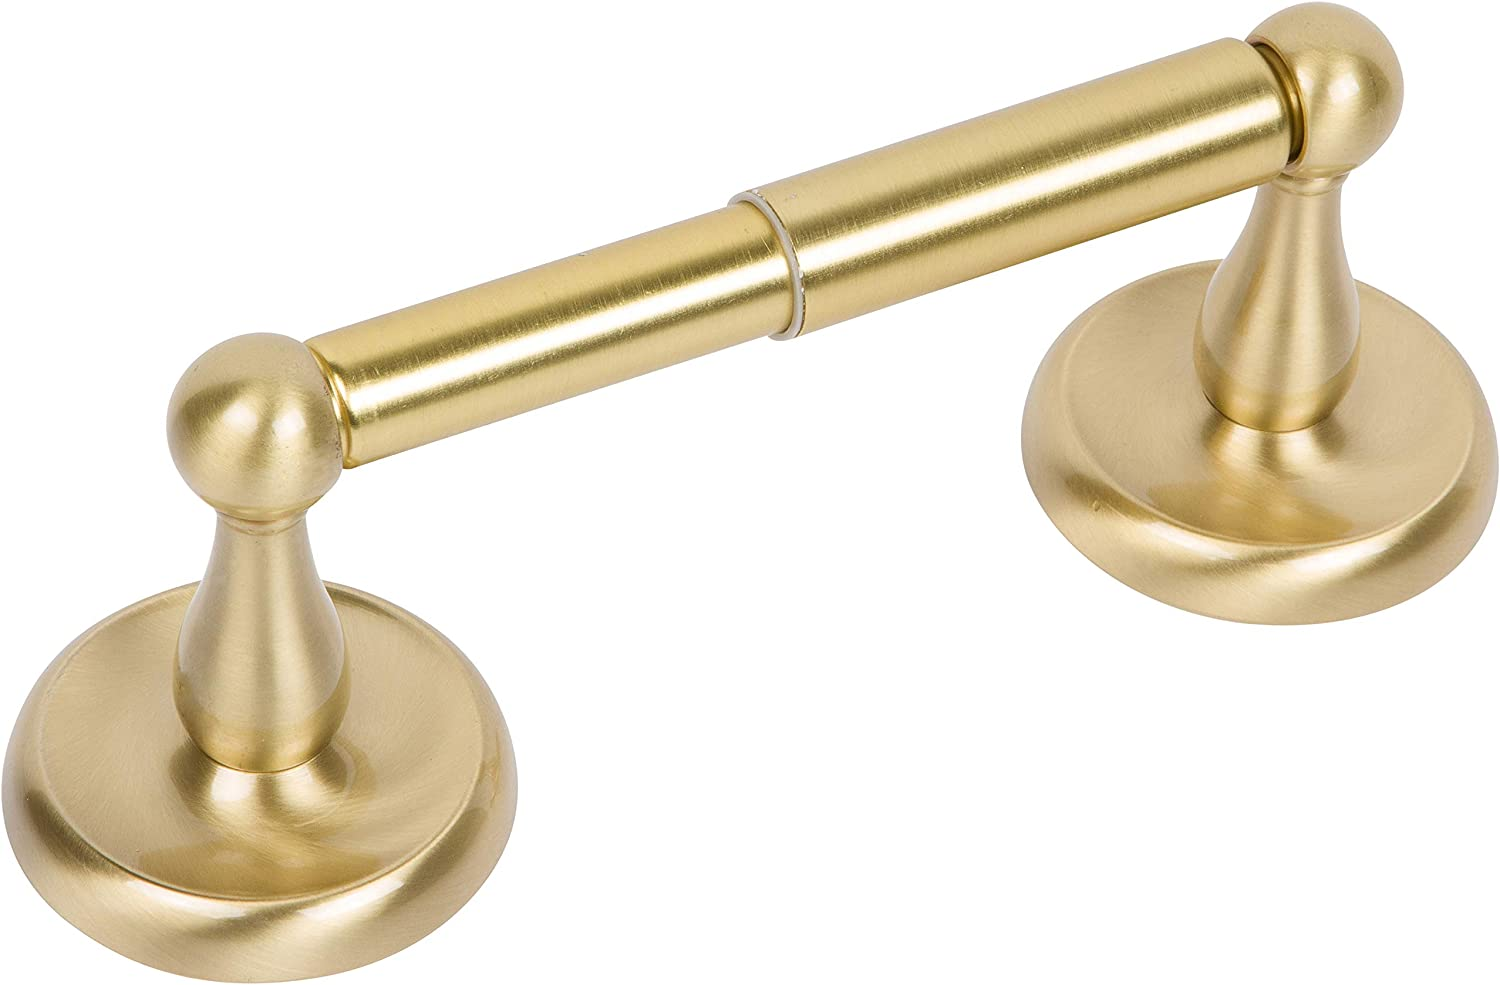 Oakland Mall Delaney Hardware 590000 500 SATIN toilet-paper-holders B specialty shop Series